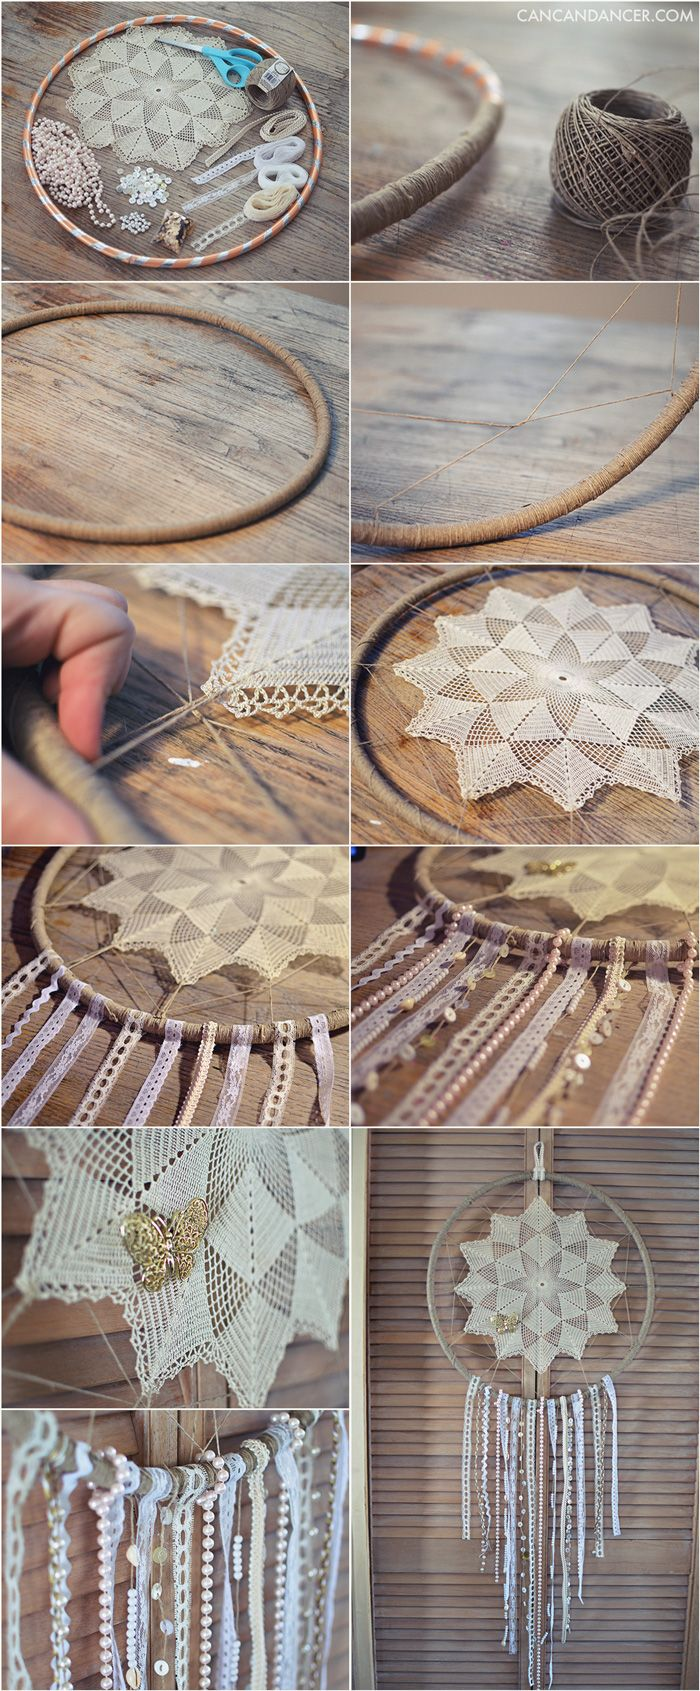 DIY instructions to make an oversized dreamcatcher